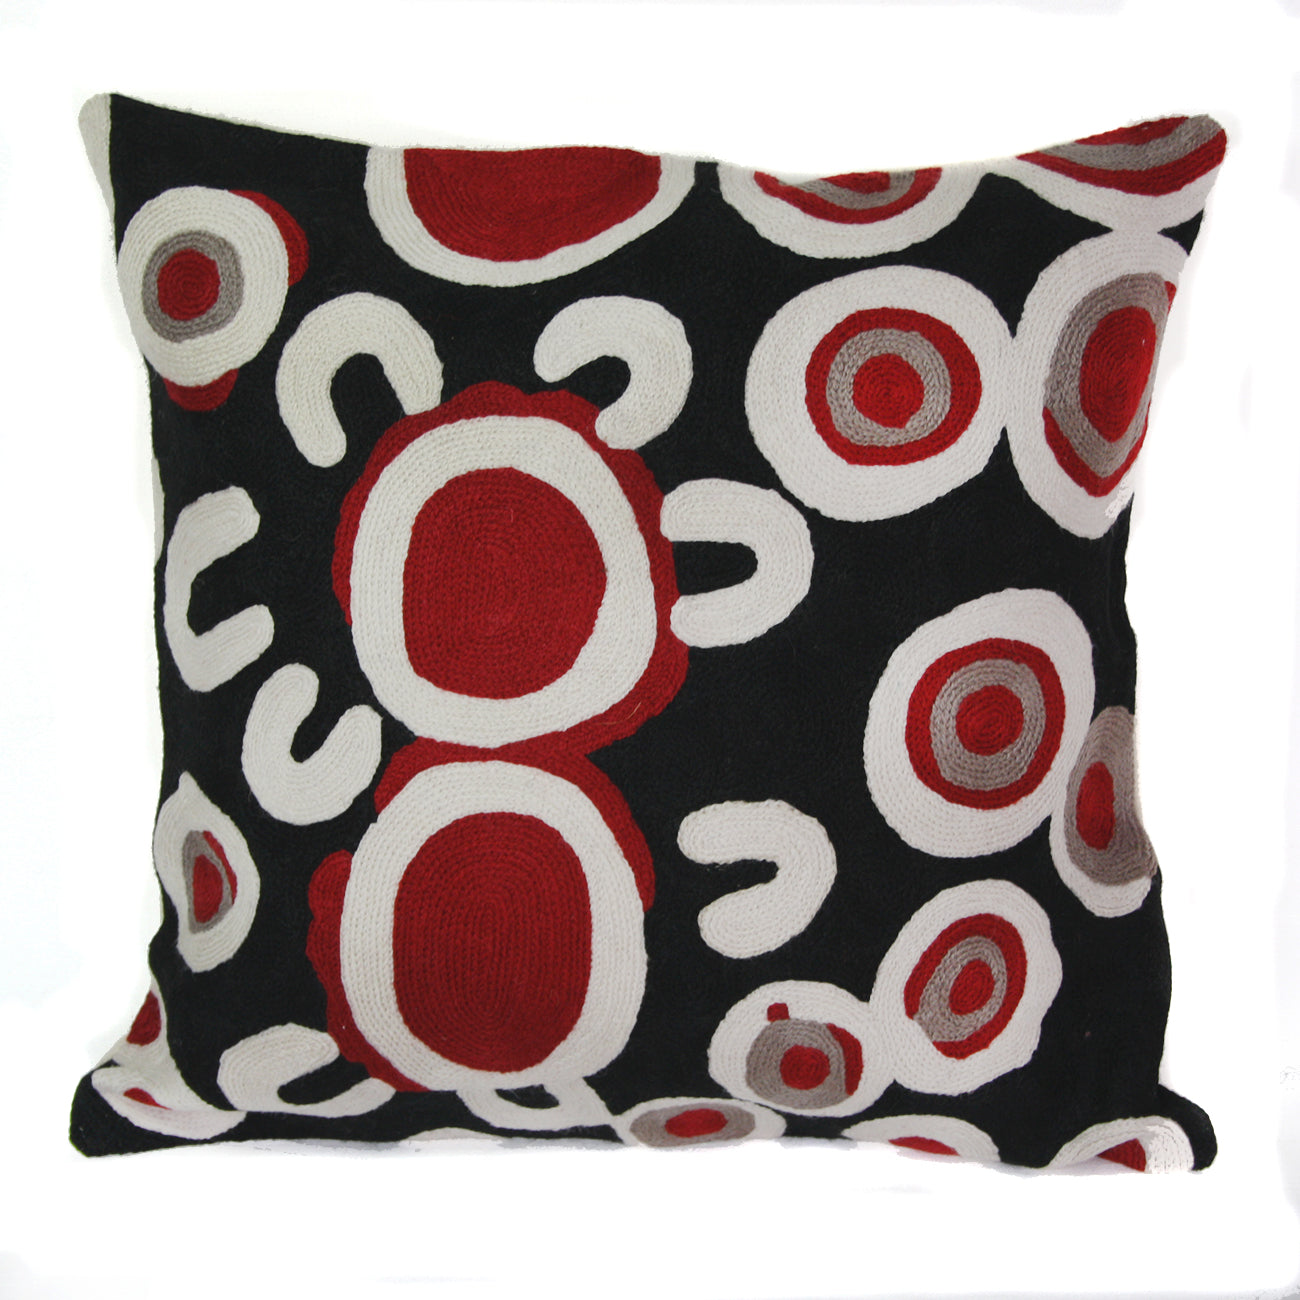 Rama Kaltu Kaltu Sampson Cushion Cover